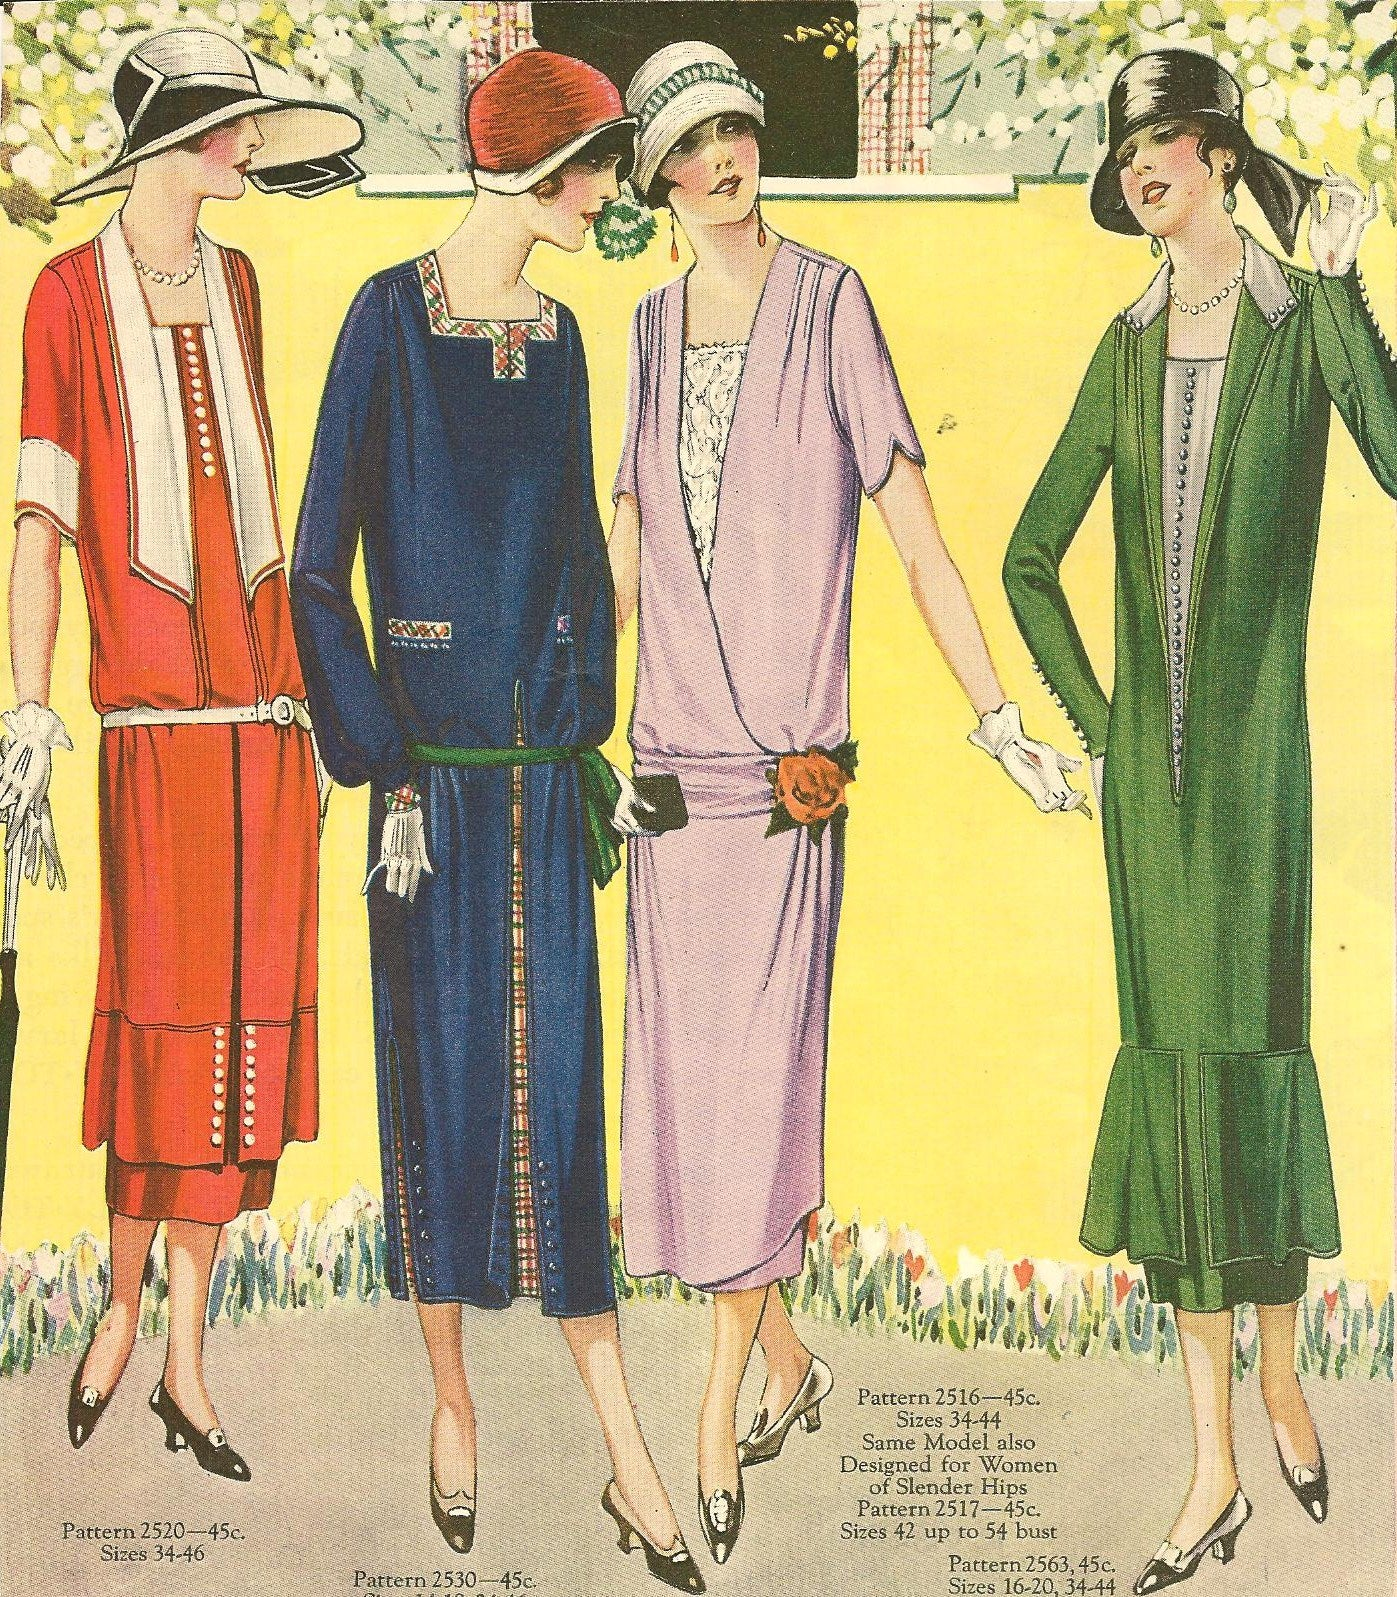 Flapper clothing 1920's outfits